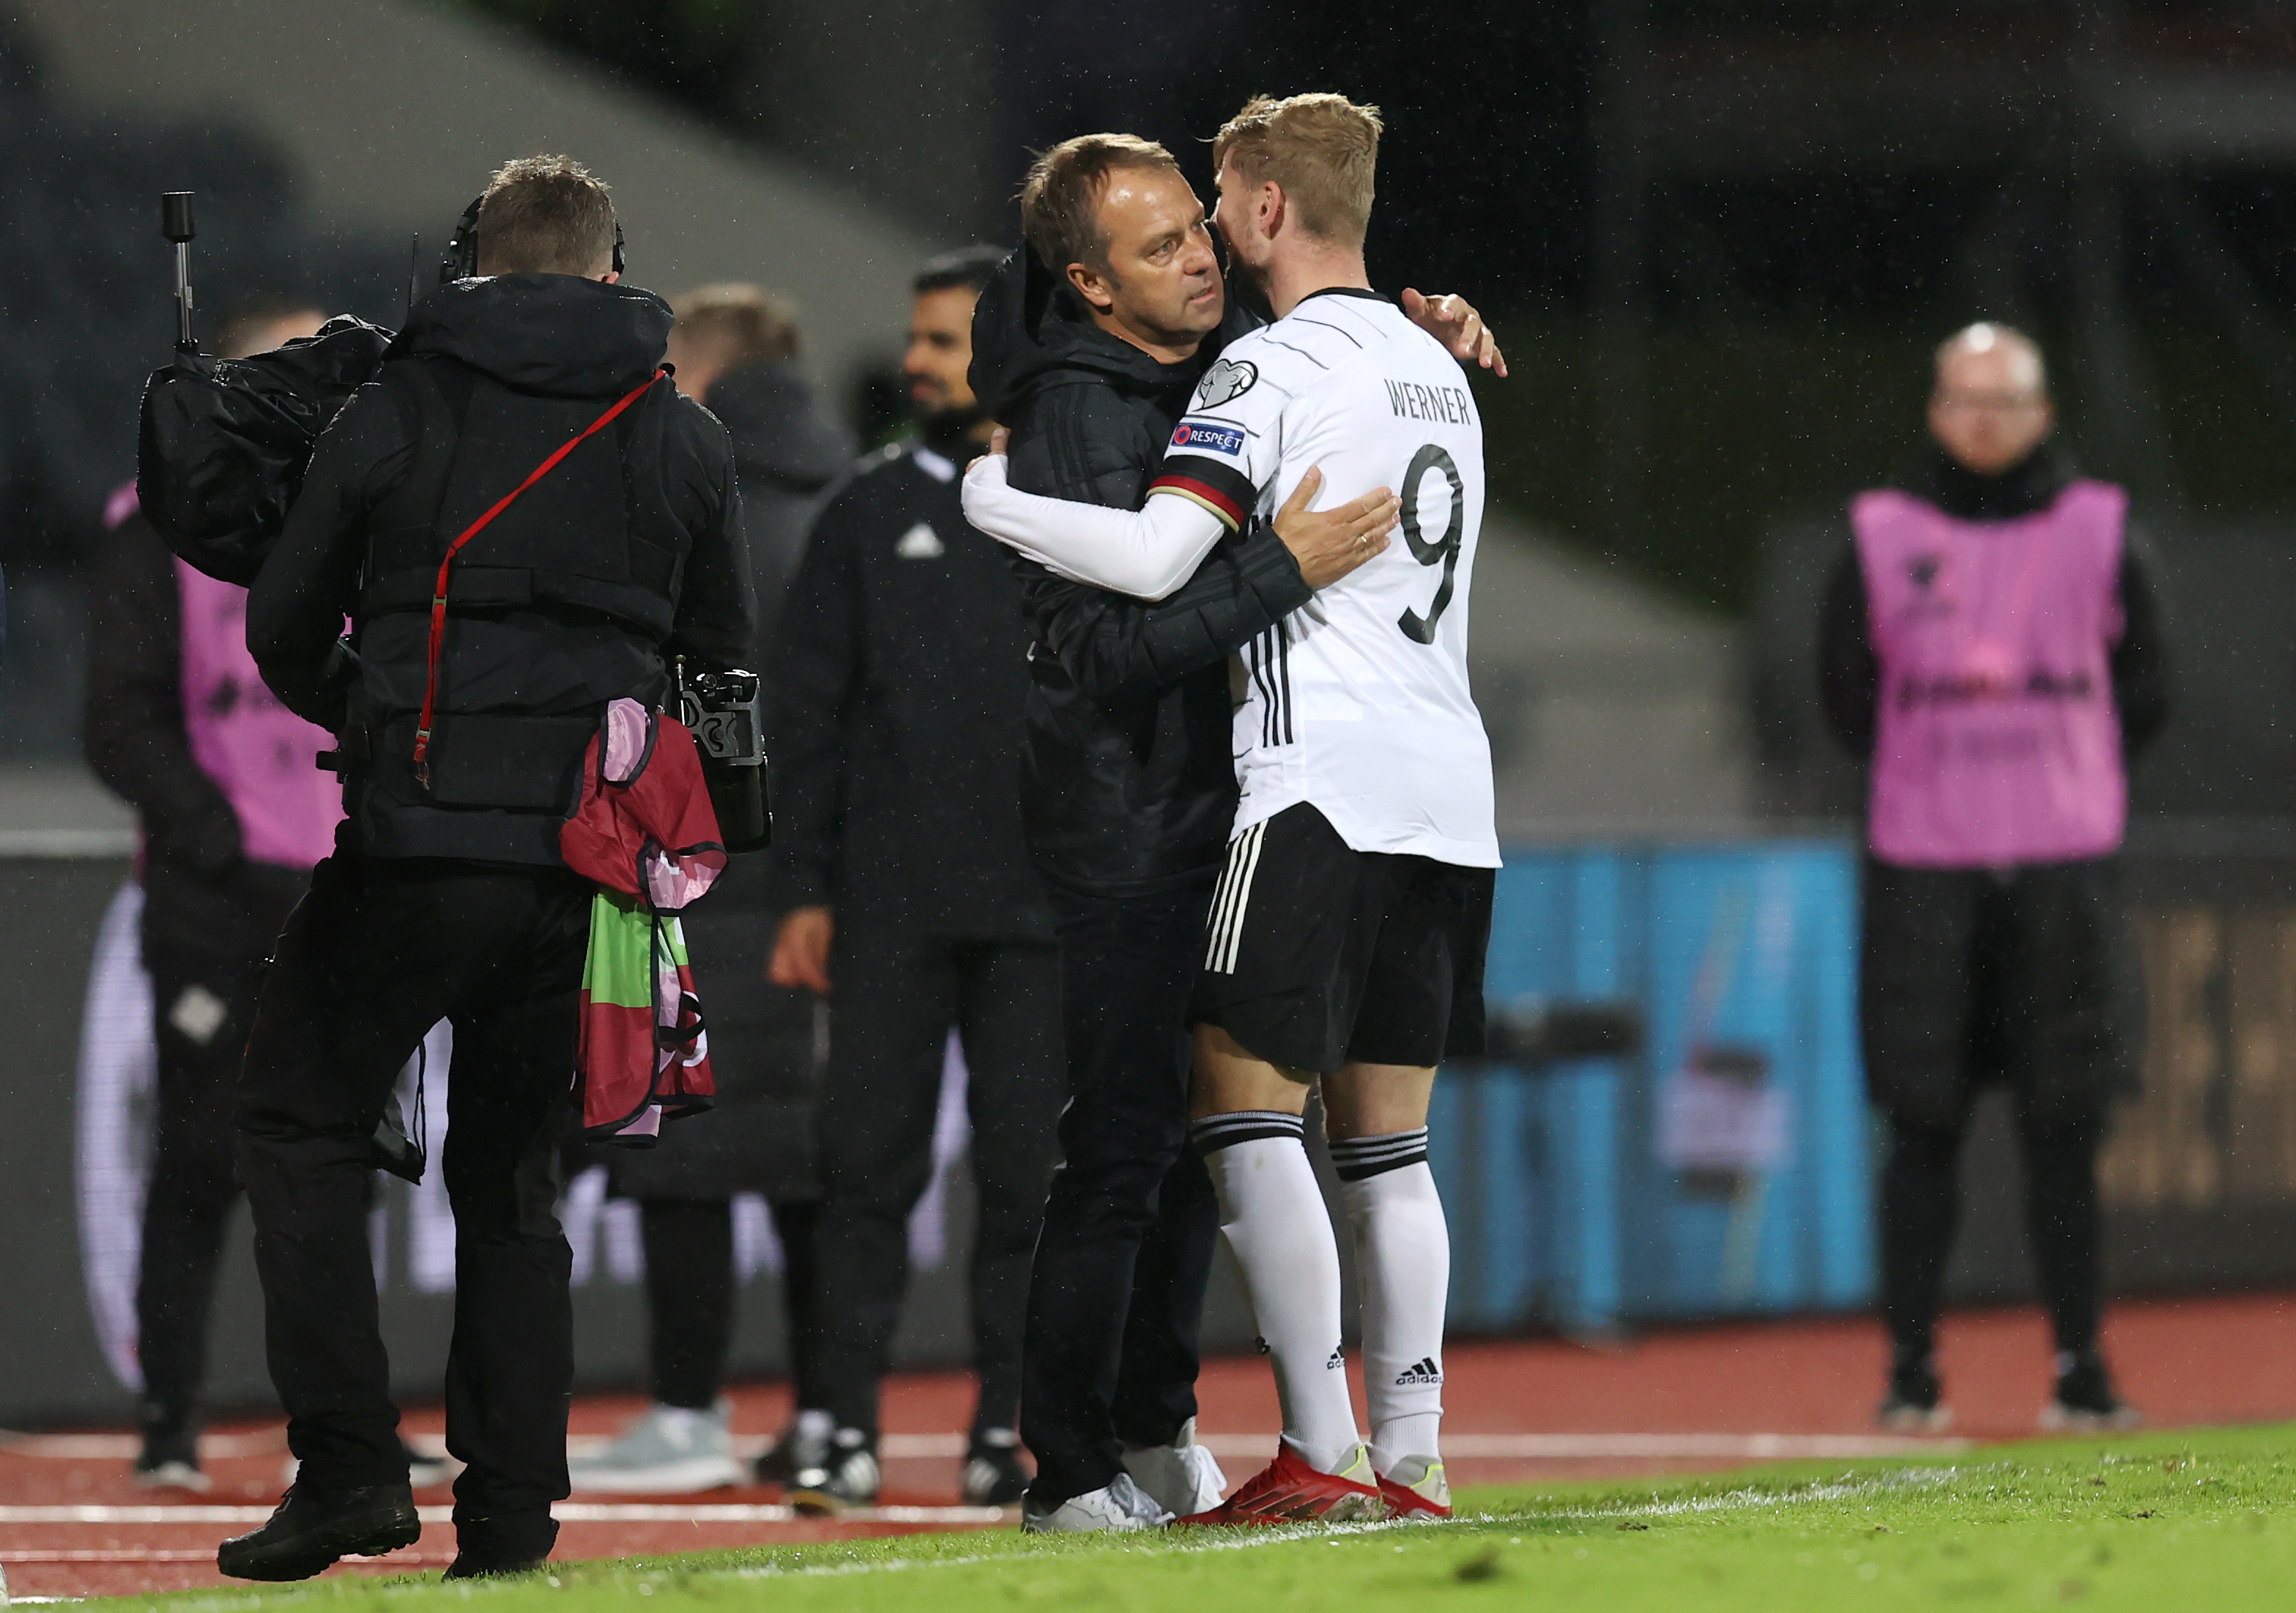 Iceland v Germany - 2022 FIFA World Cup Qualifier